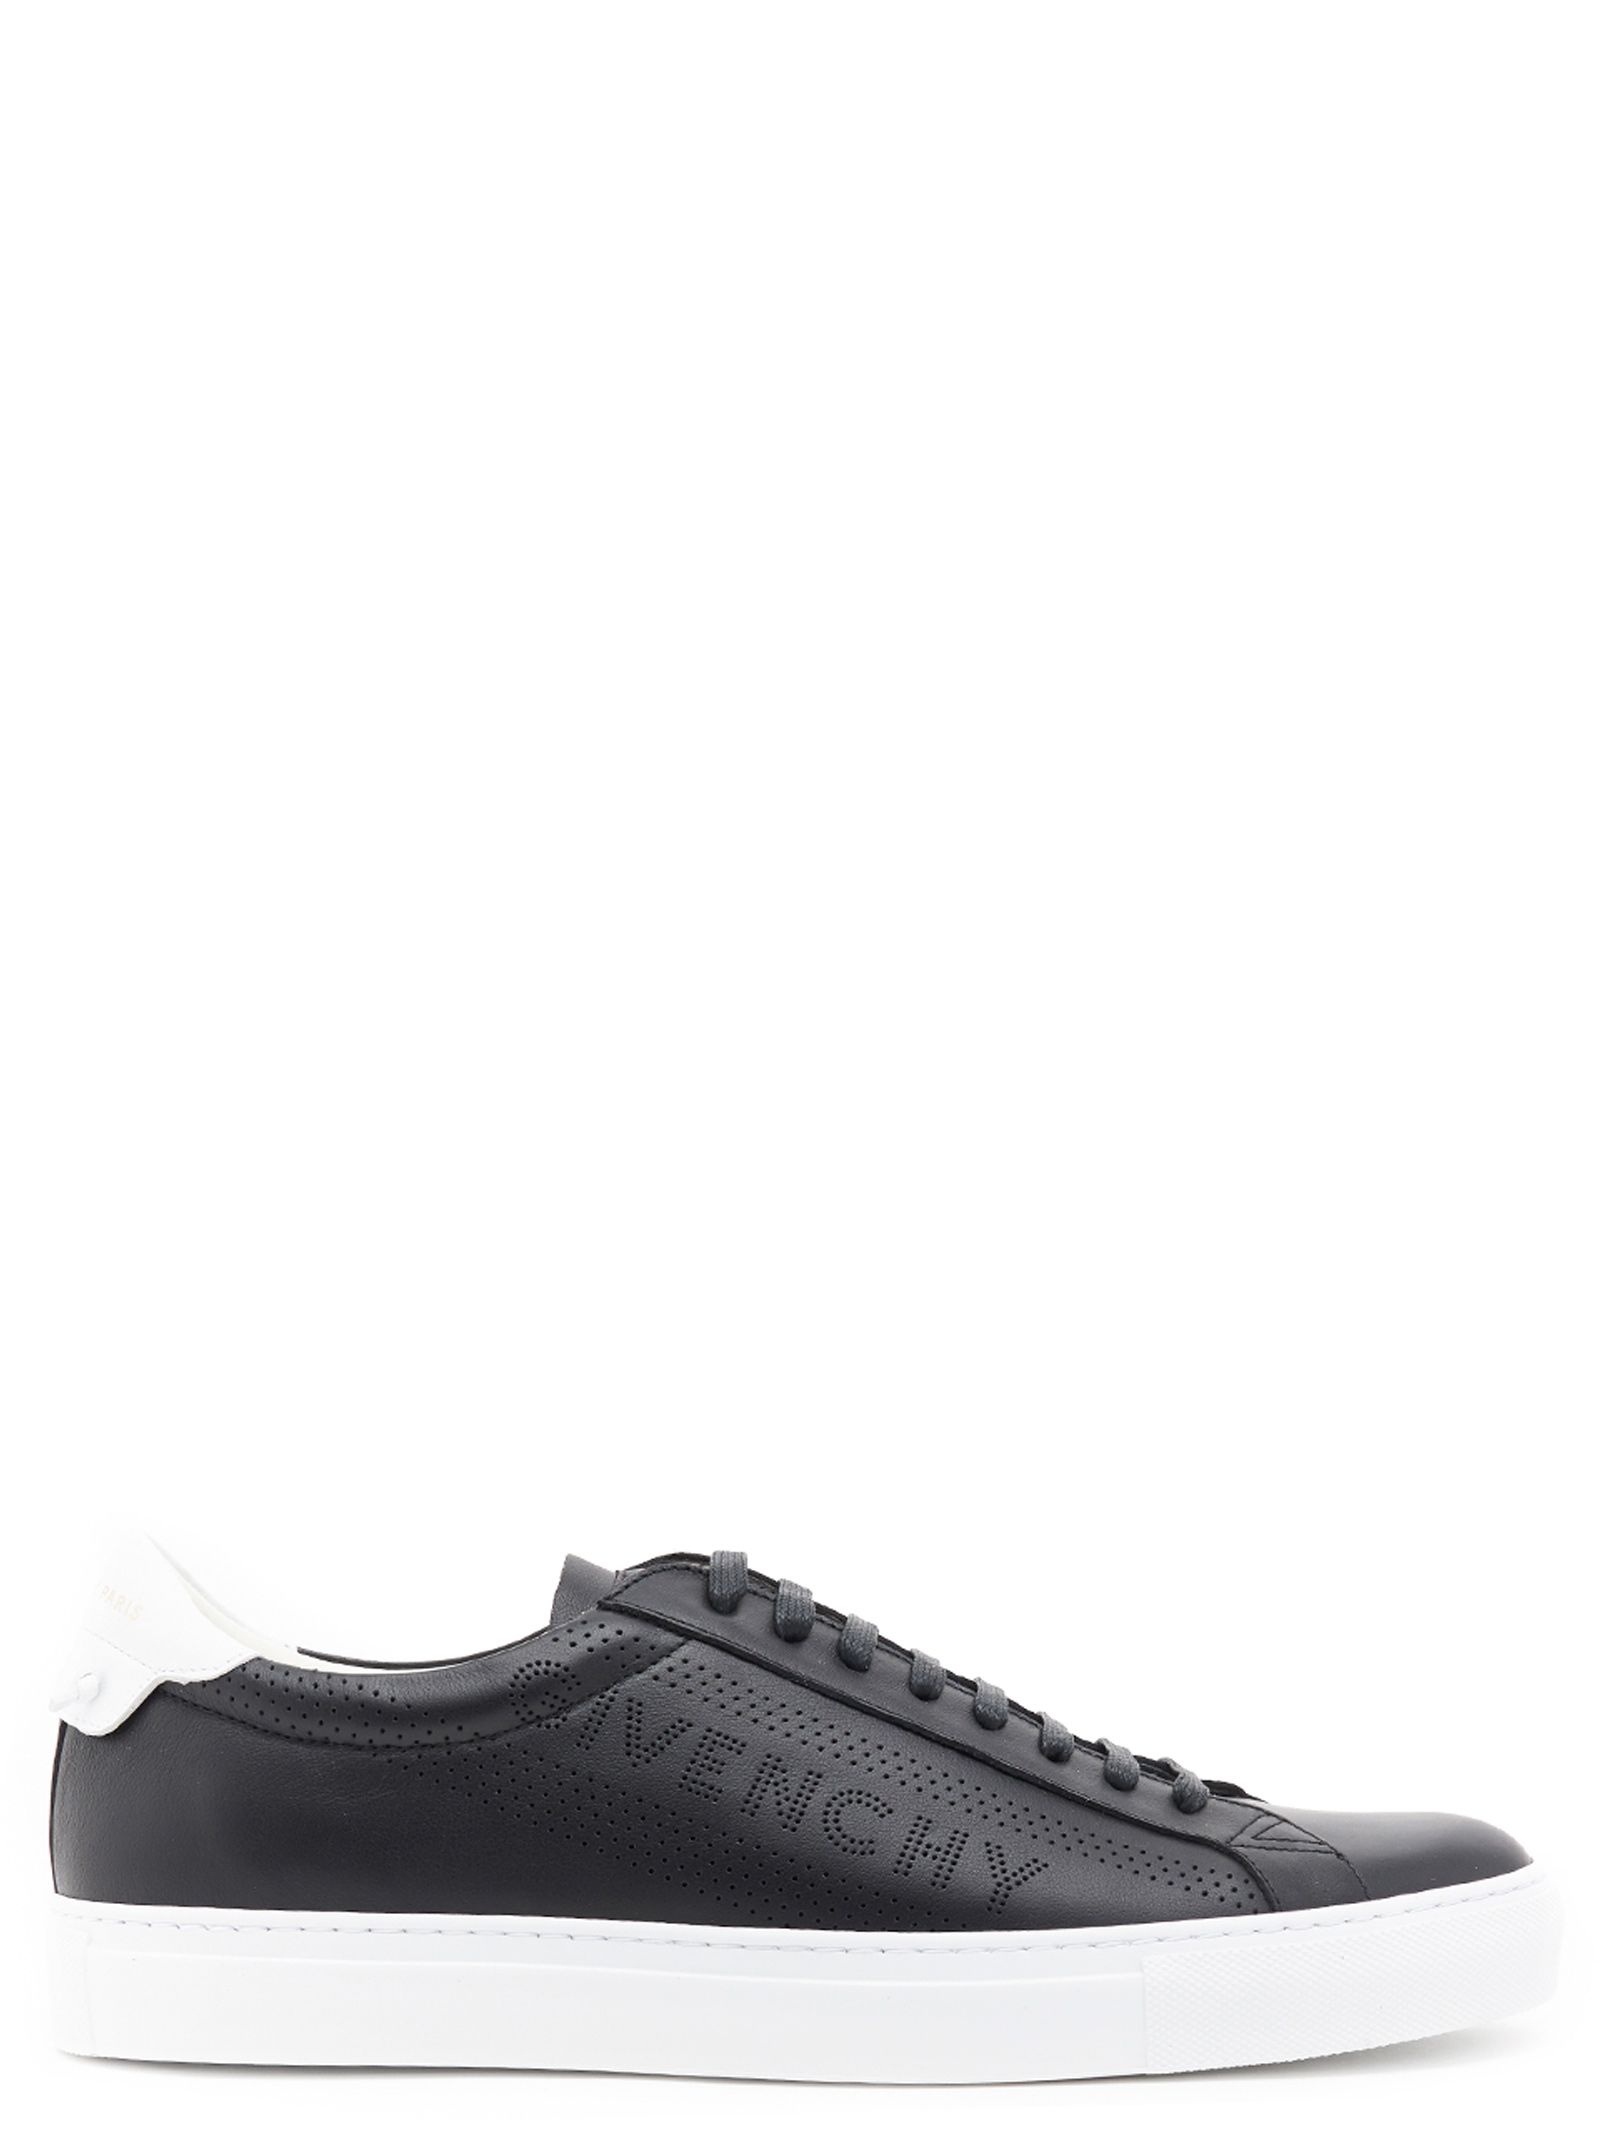 d3bd110fe1f5 Givenchy Givenchy Shoes - Black - 10789610